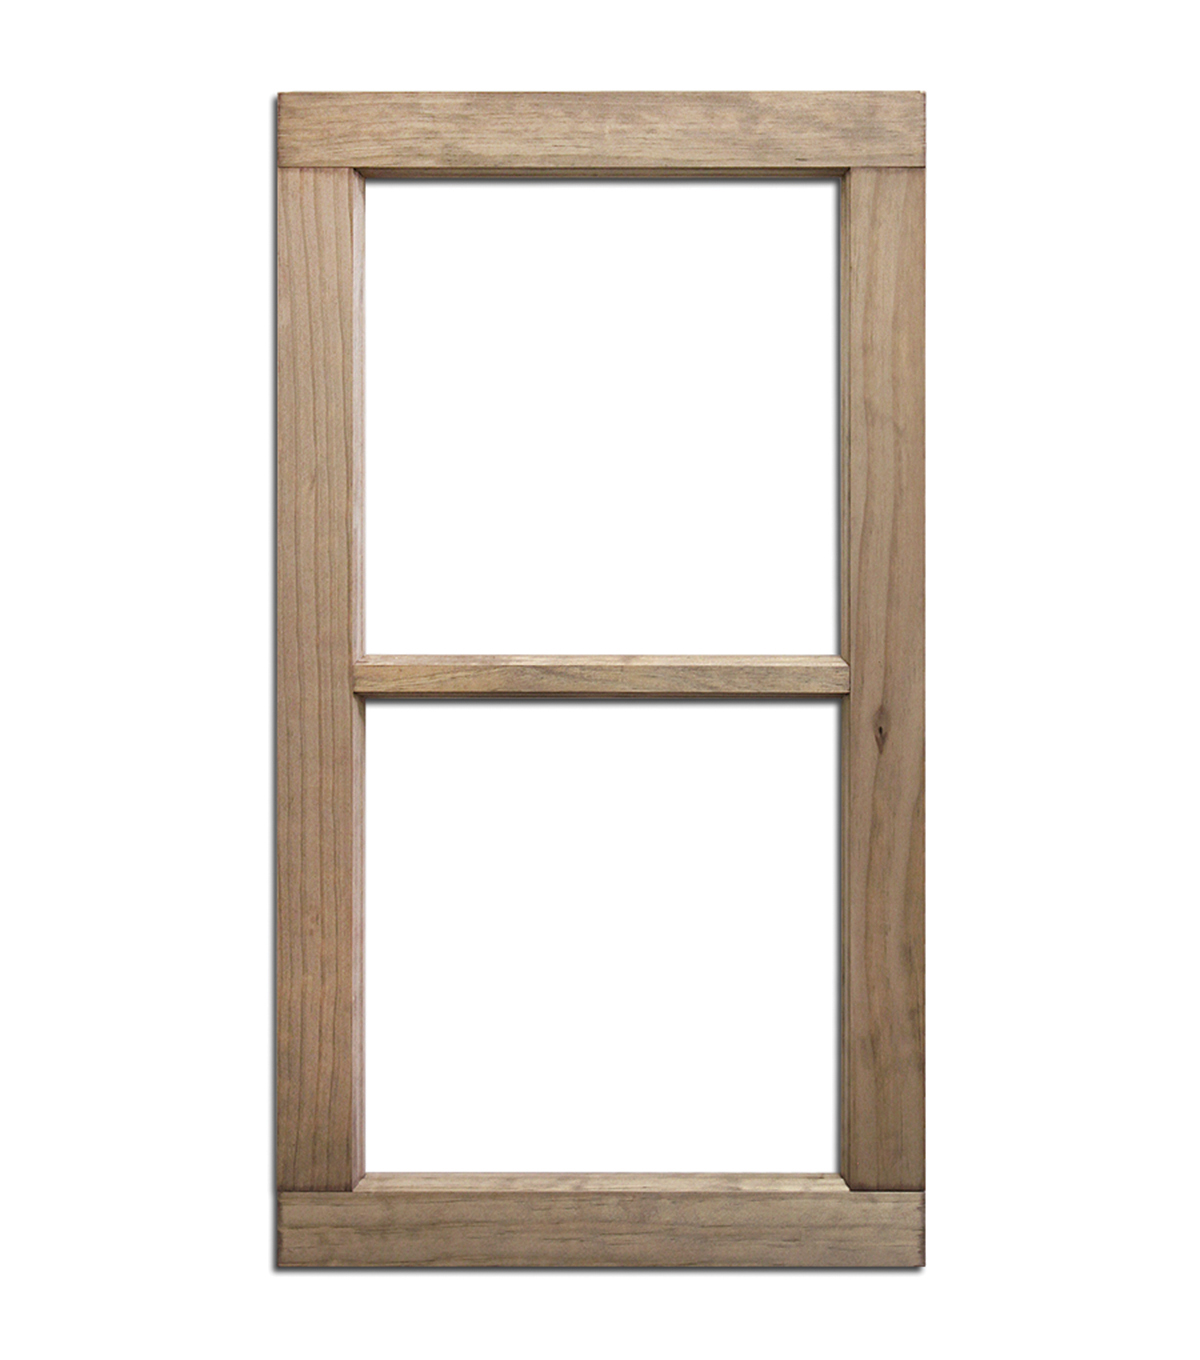 Picture framing supplies tools accessories joann salvaged 2 pane weathered wood window frame jeuxipadfo Choice Image